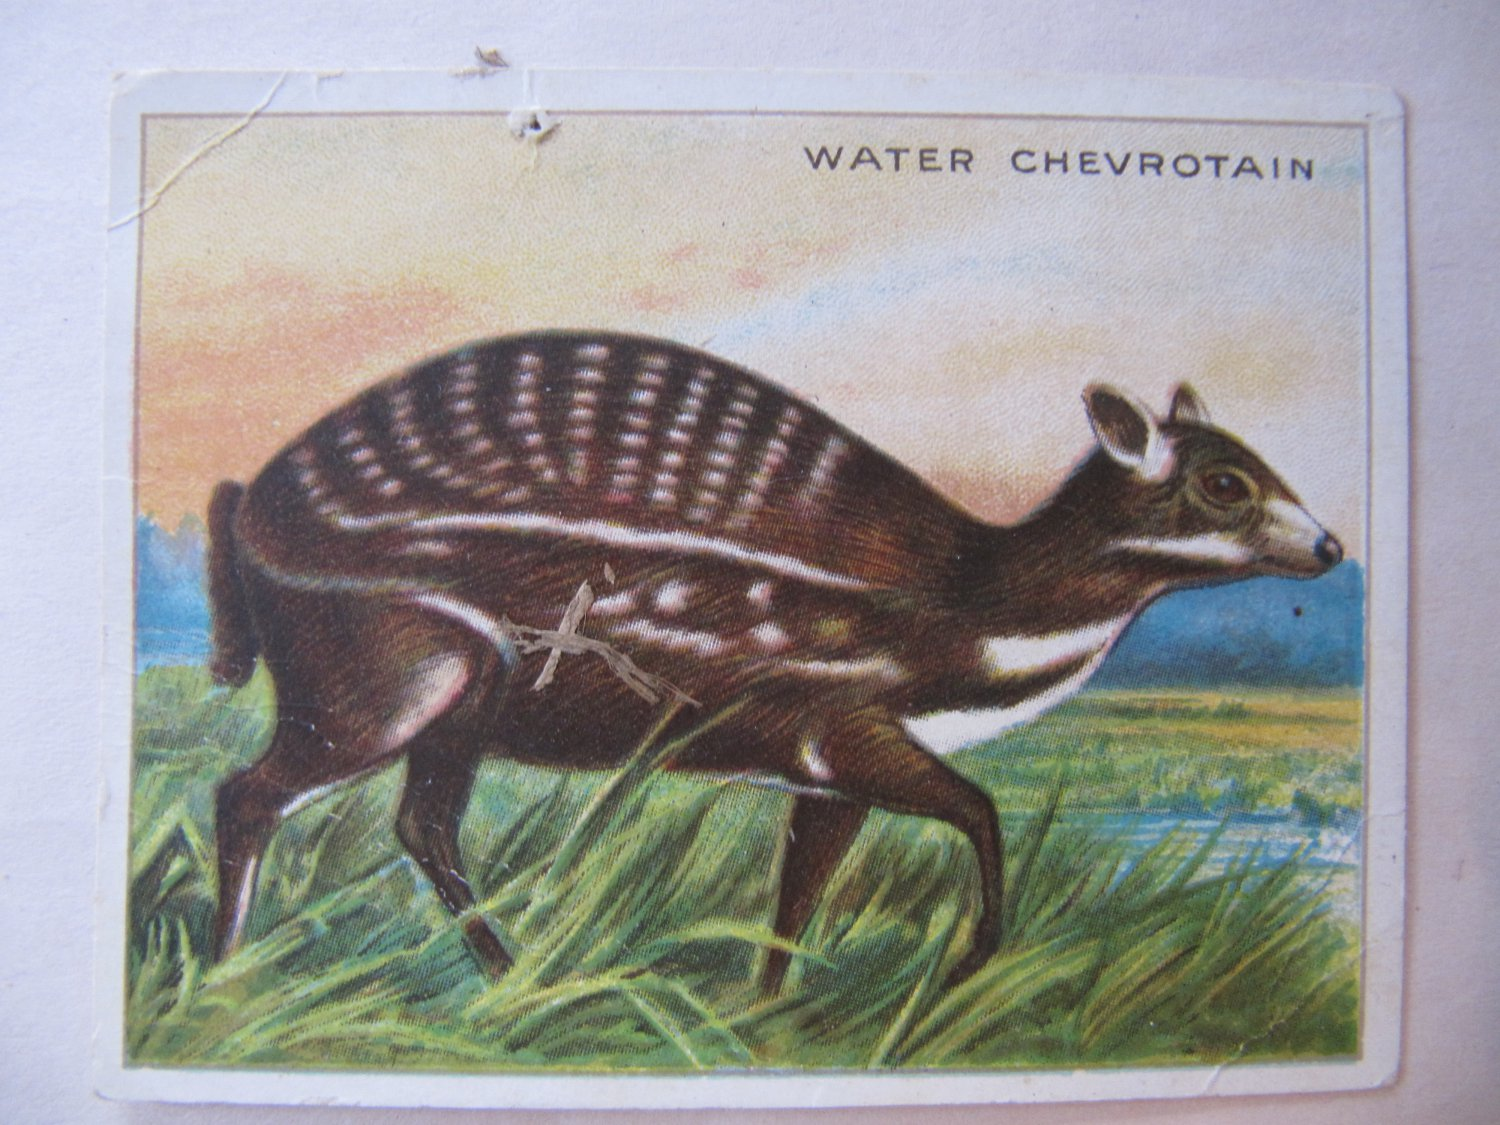 """Vintage Hassan Cork Tip Cigarettes Animals Card Water Chevrotain 3.25"""" by 2.5"""""""